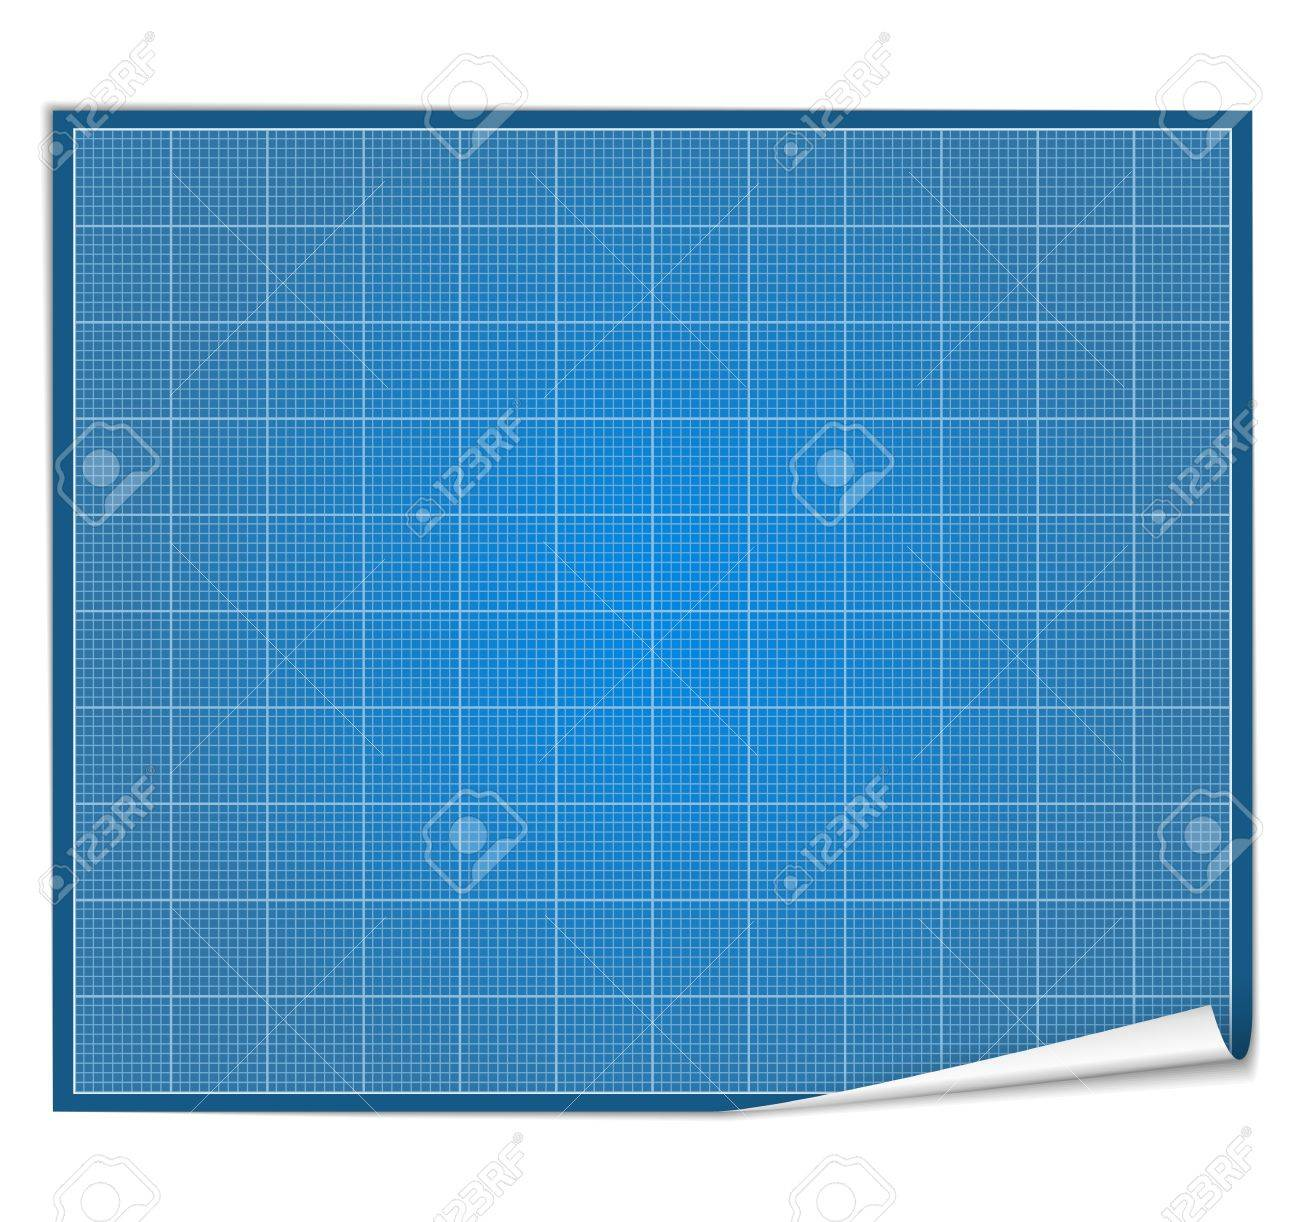 Blank blueprint paper royalty free cliparts vectors and stock blank blueprint paper stock vector 13723438 malvernweather Gallery